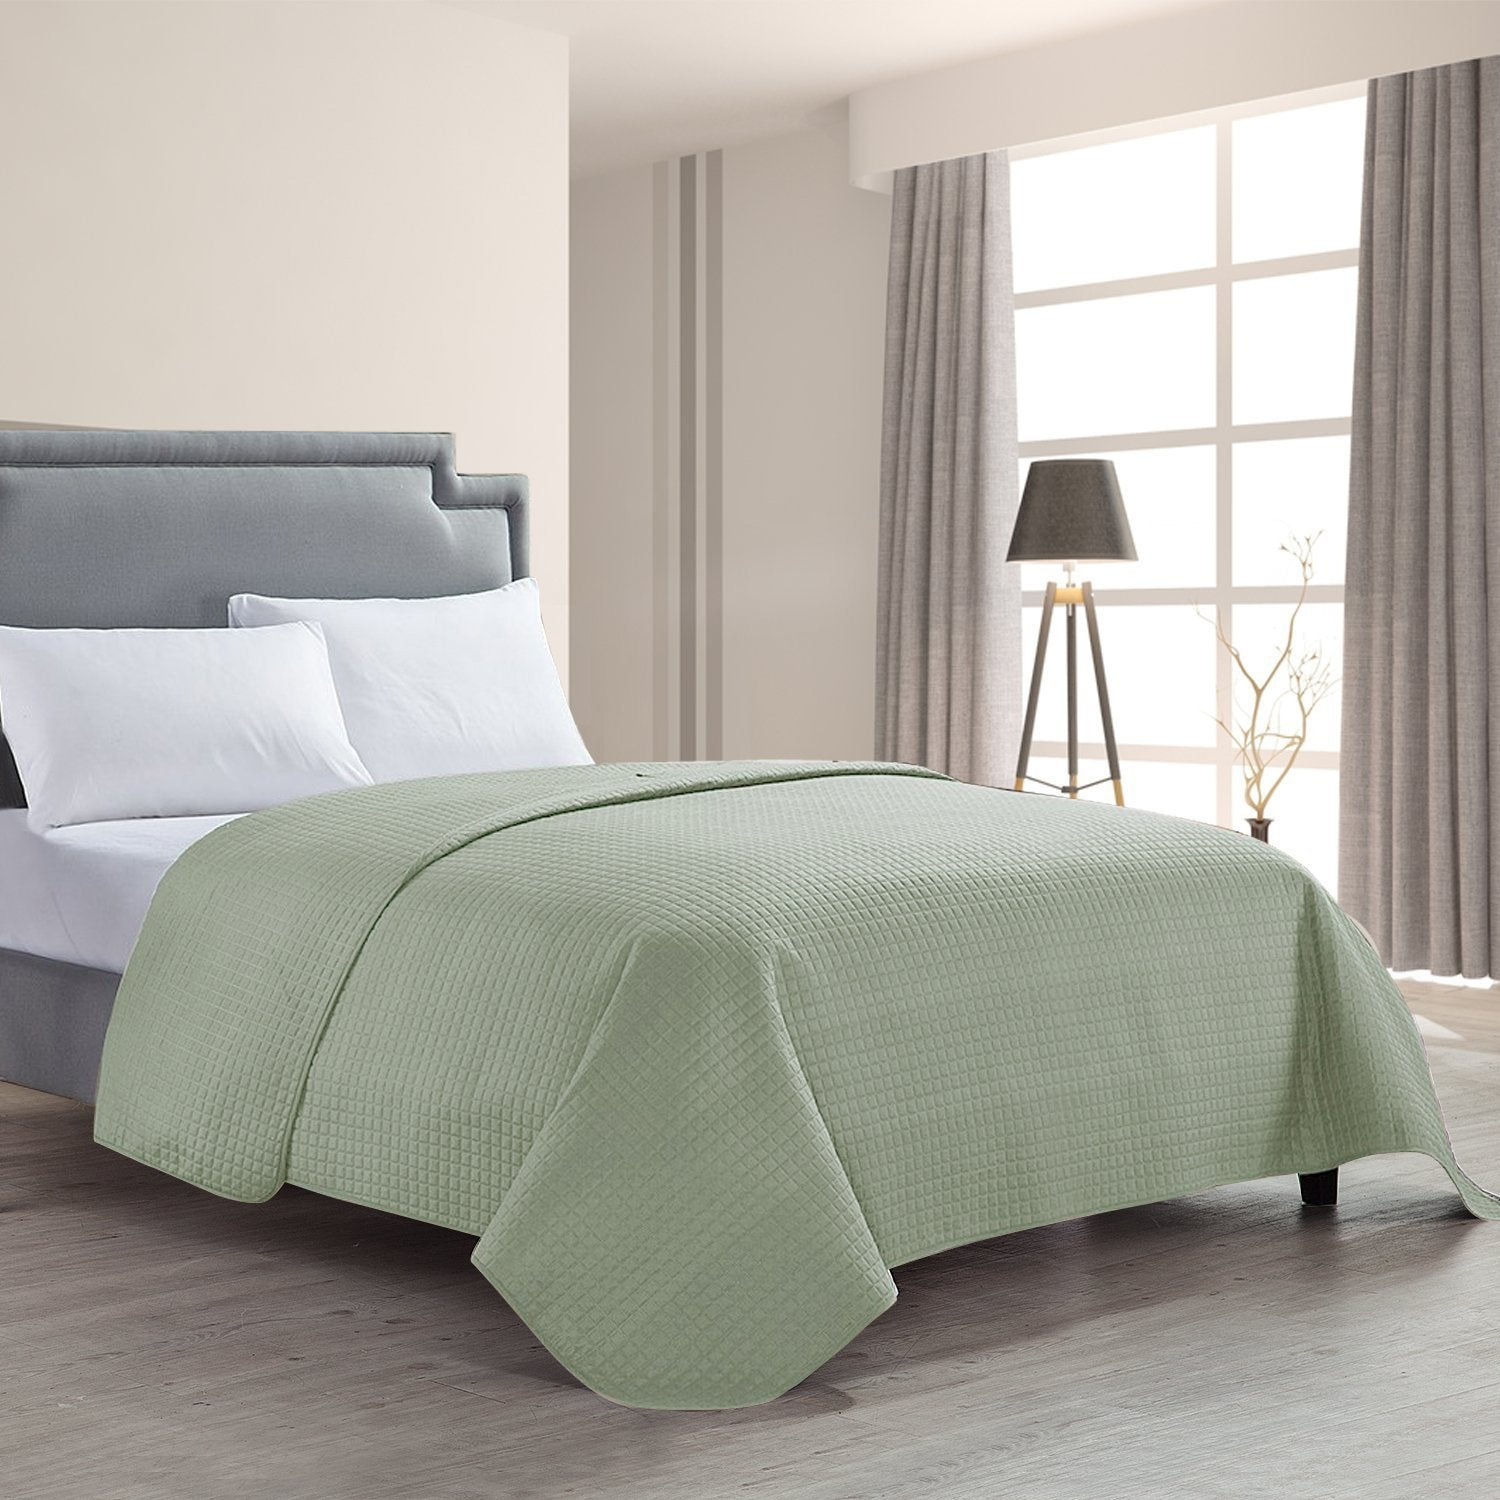 HollyHOME Luxury Checkered Super Soft Quilt Bedspread Bed Cover, Sage - HollyHOME